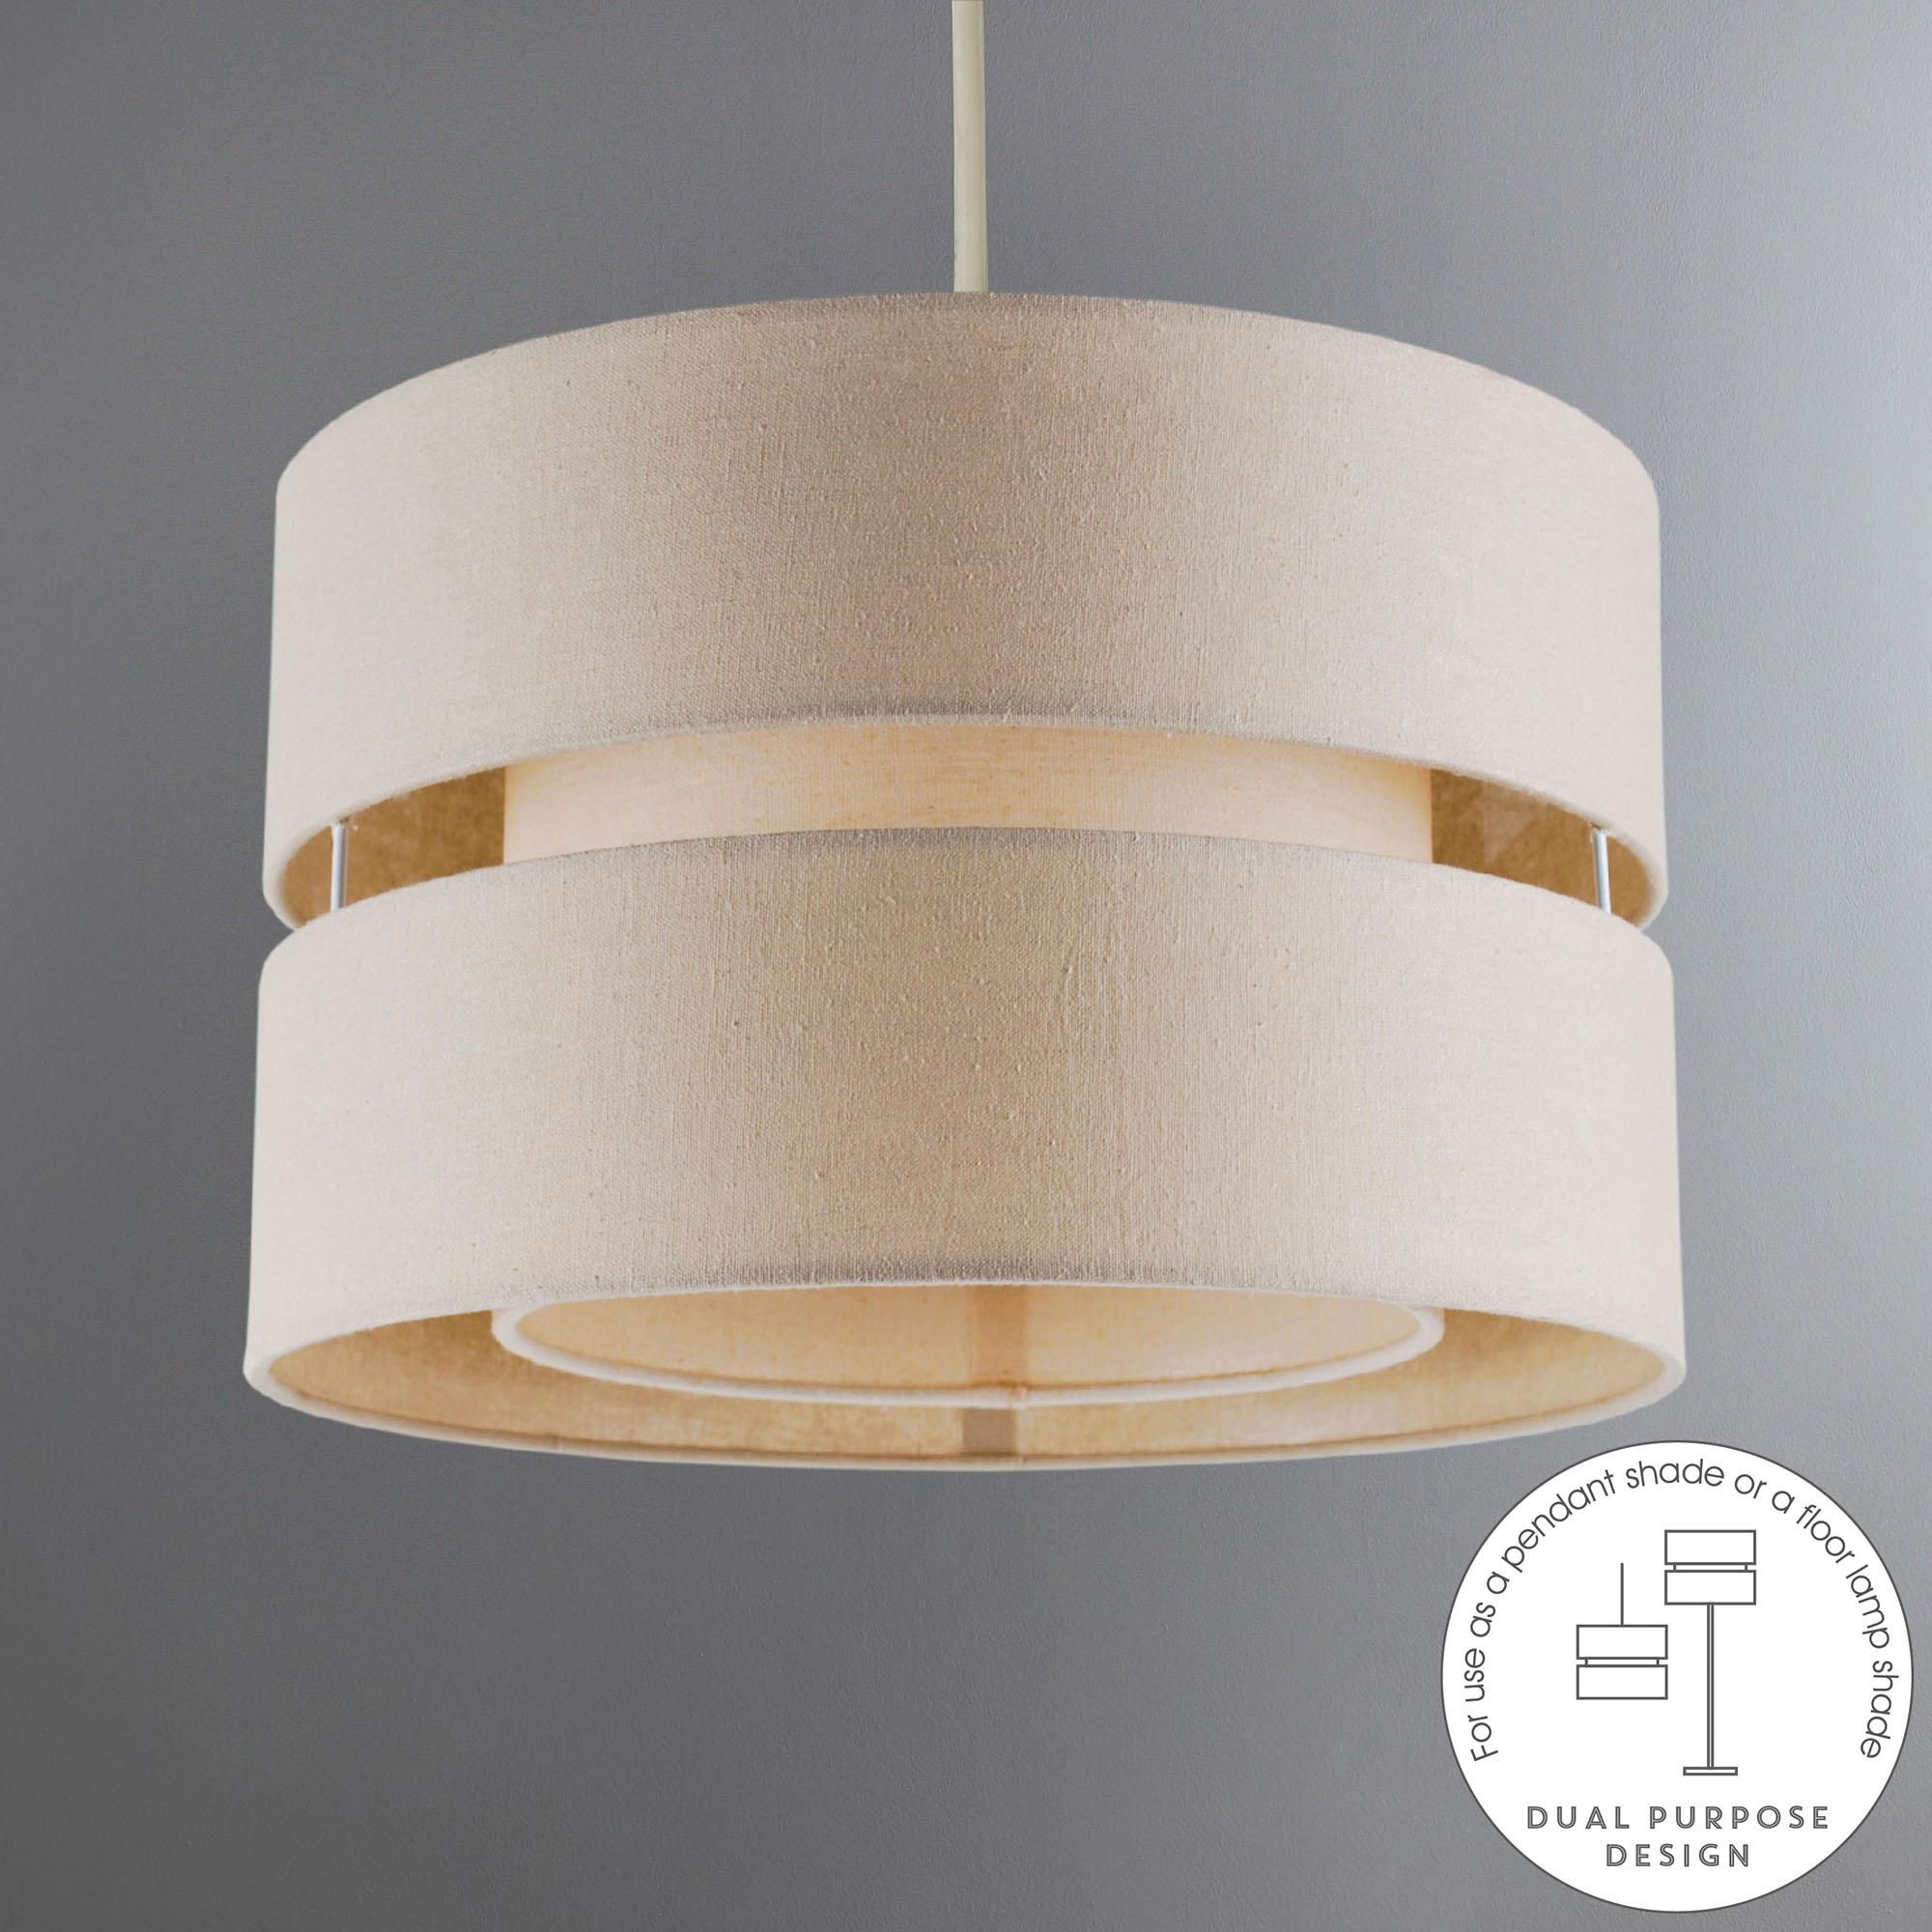 A Guide To Choosing Ceiling Light Shades Pendant Light Shades